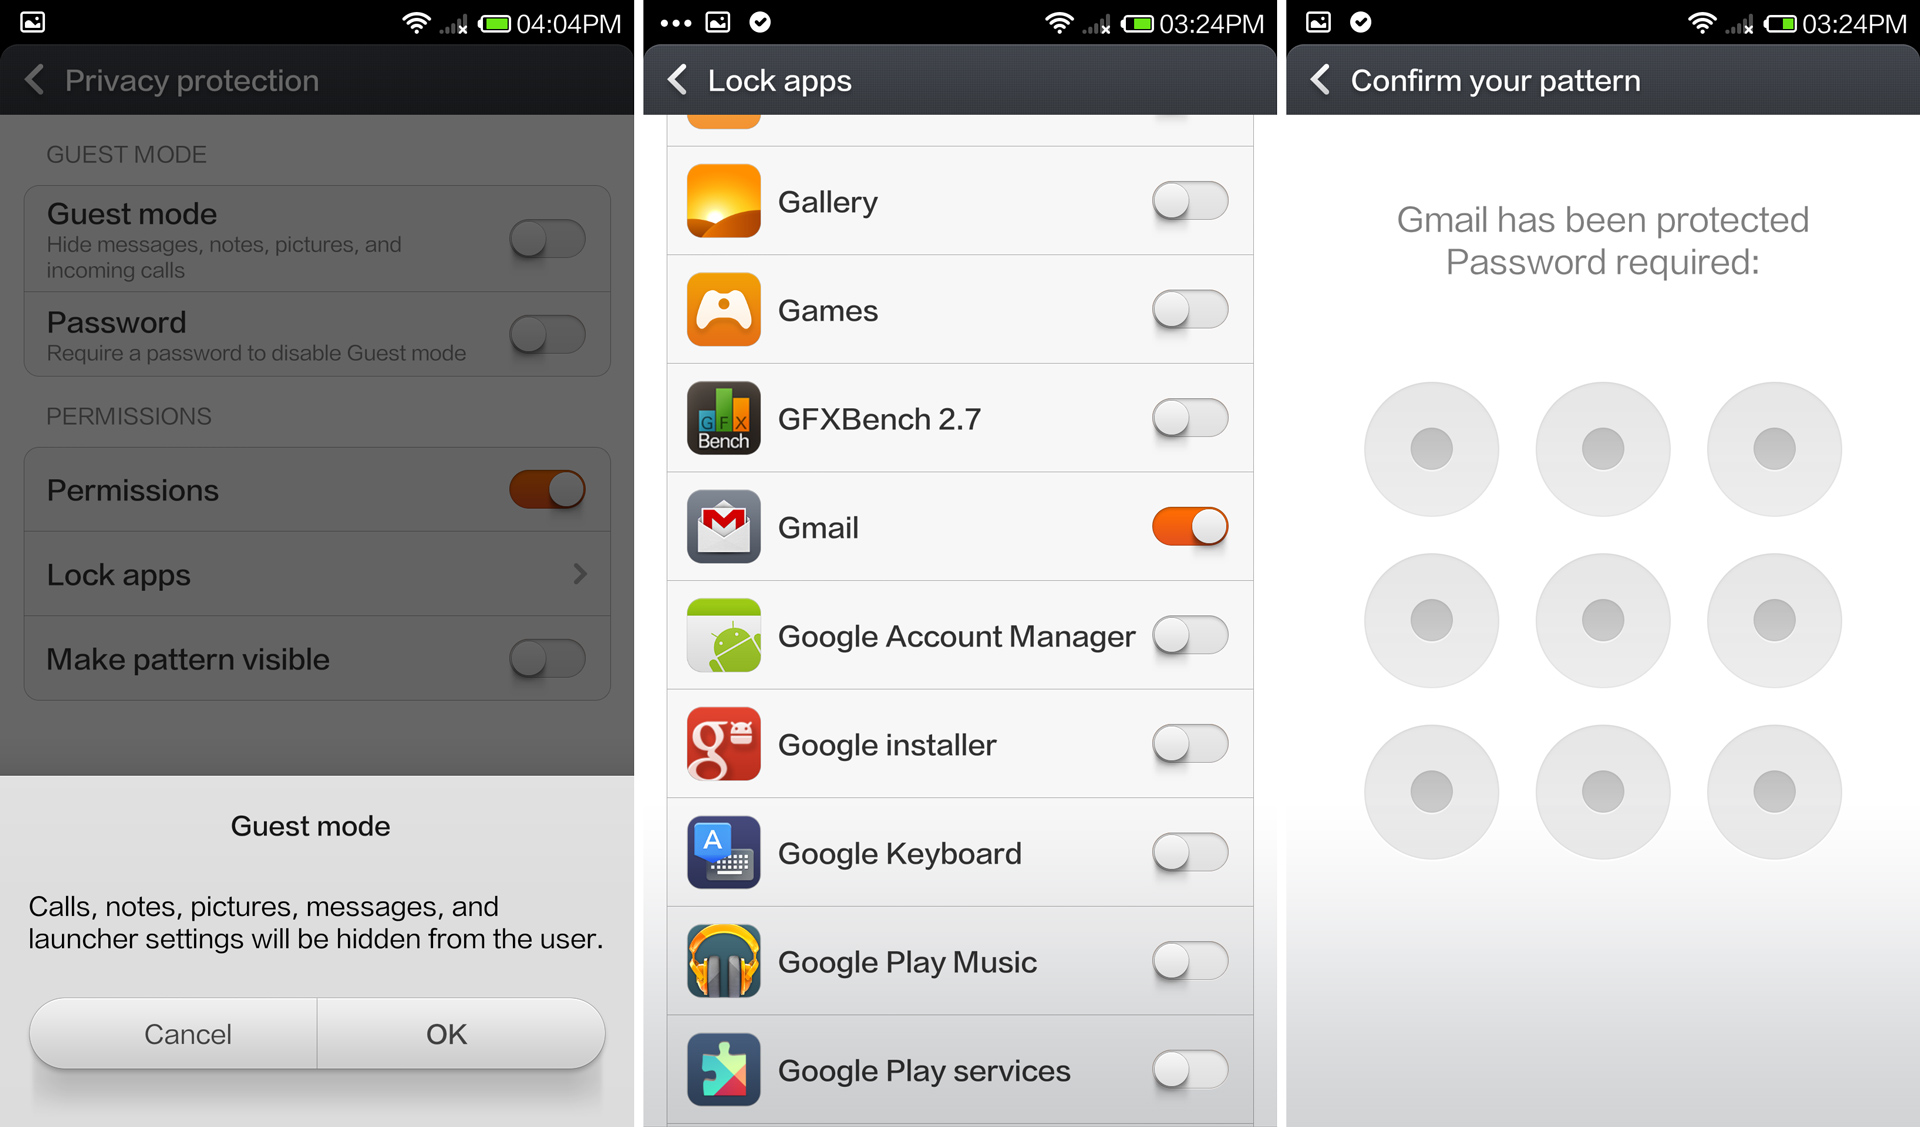 The Guest mode and password protecting an app.